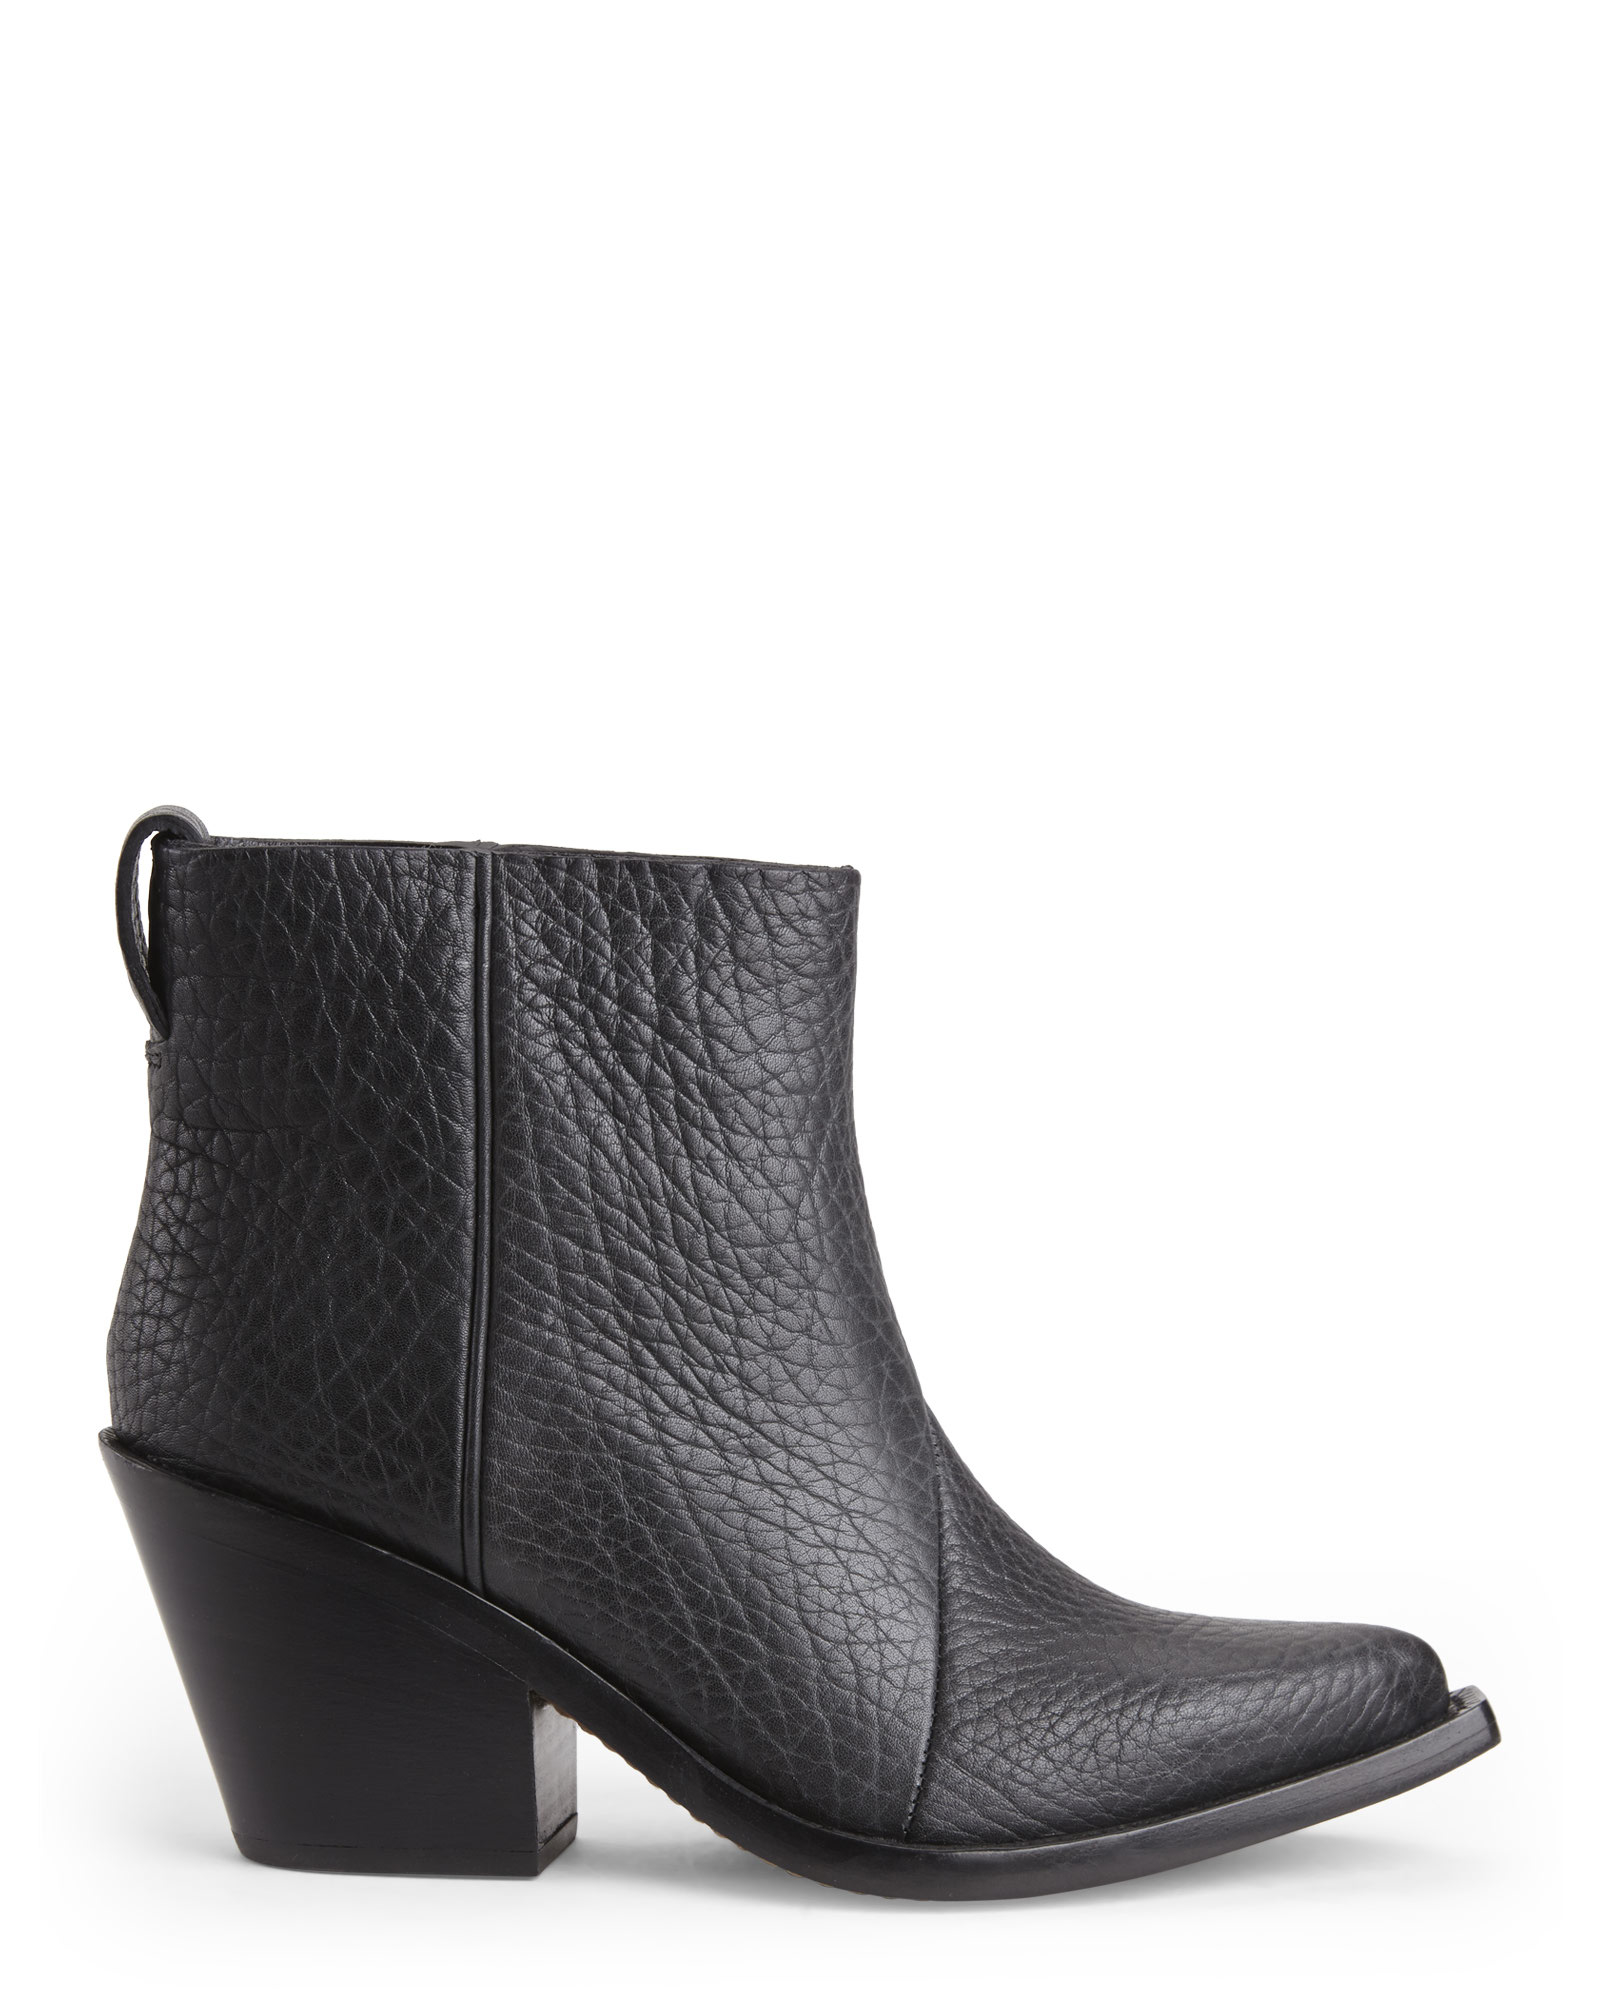 acne donna boots sale